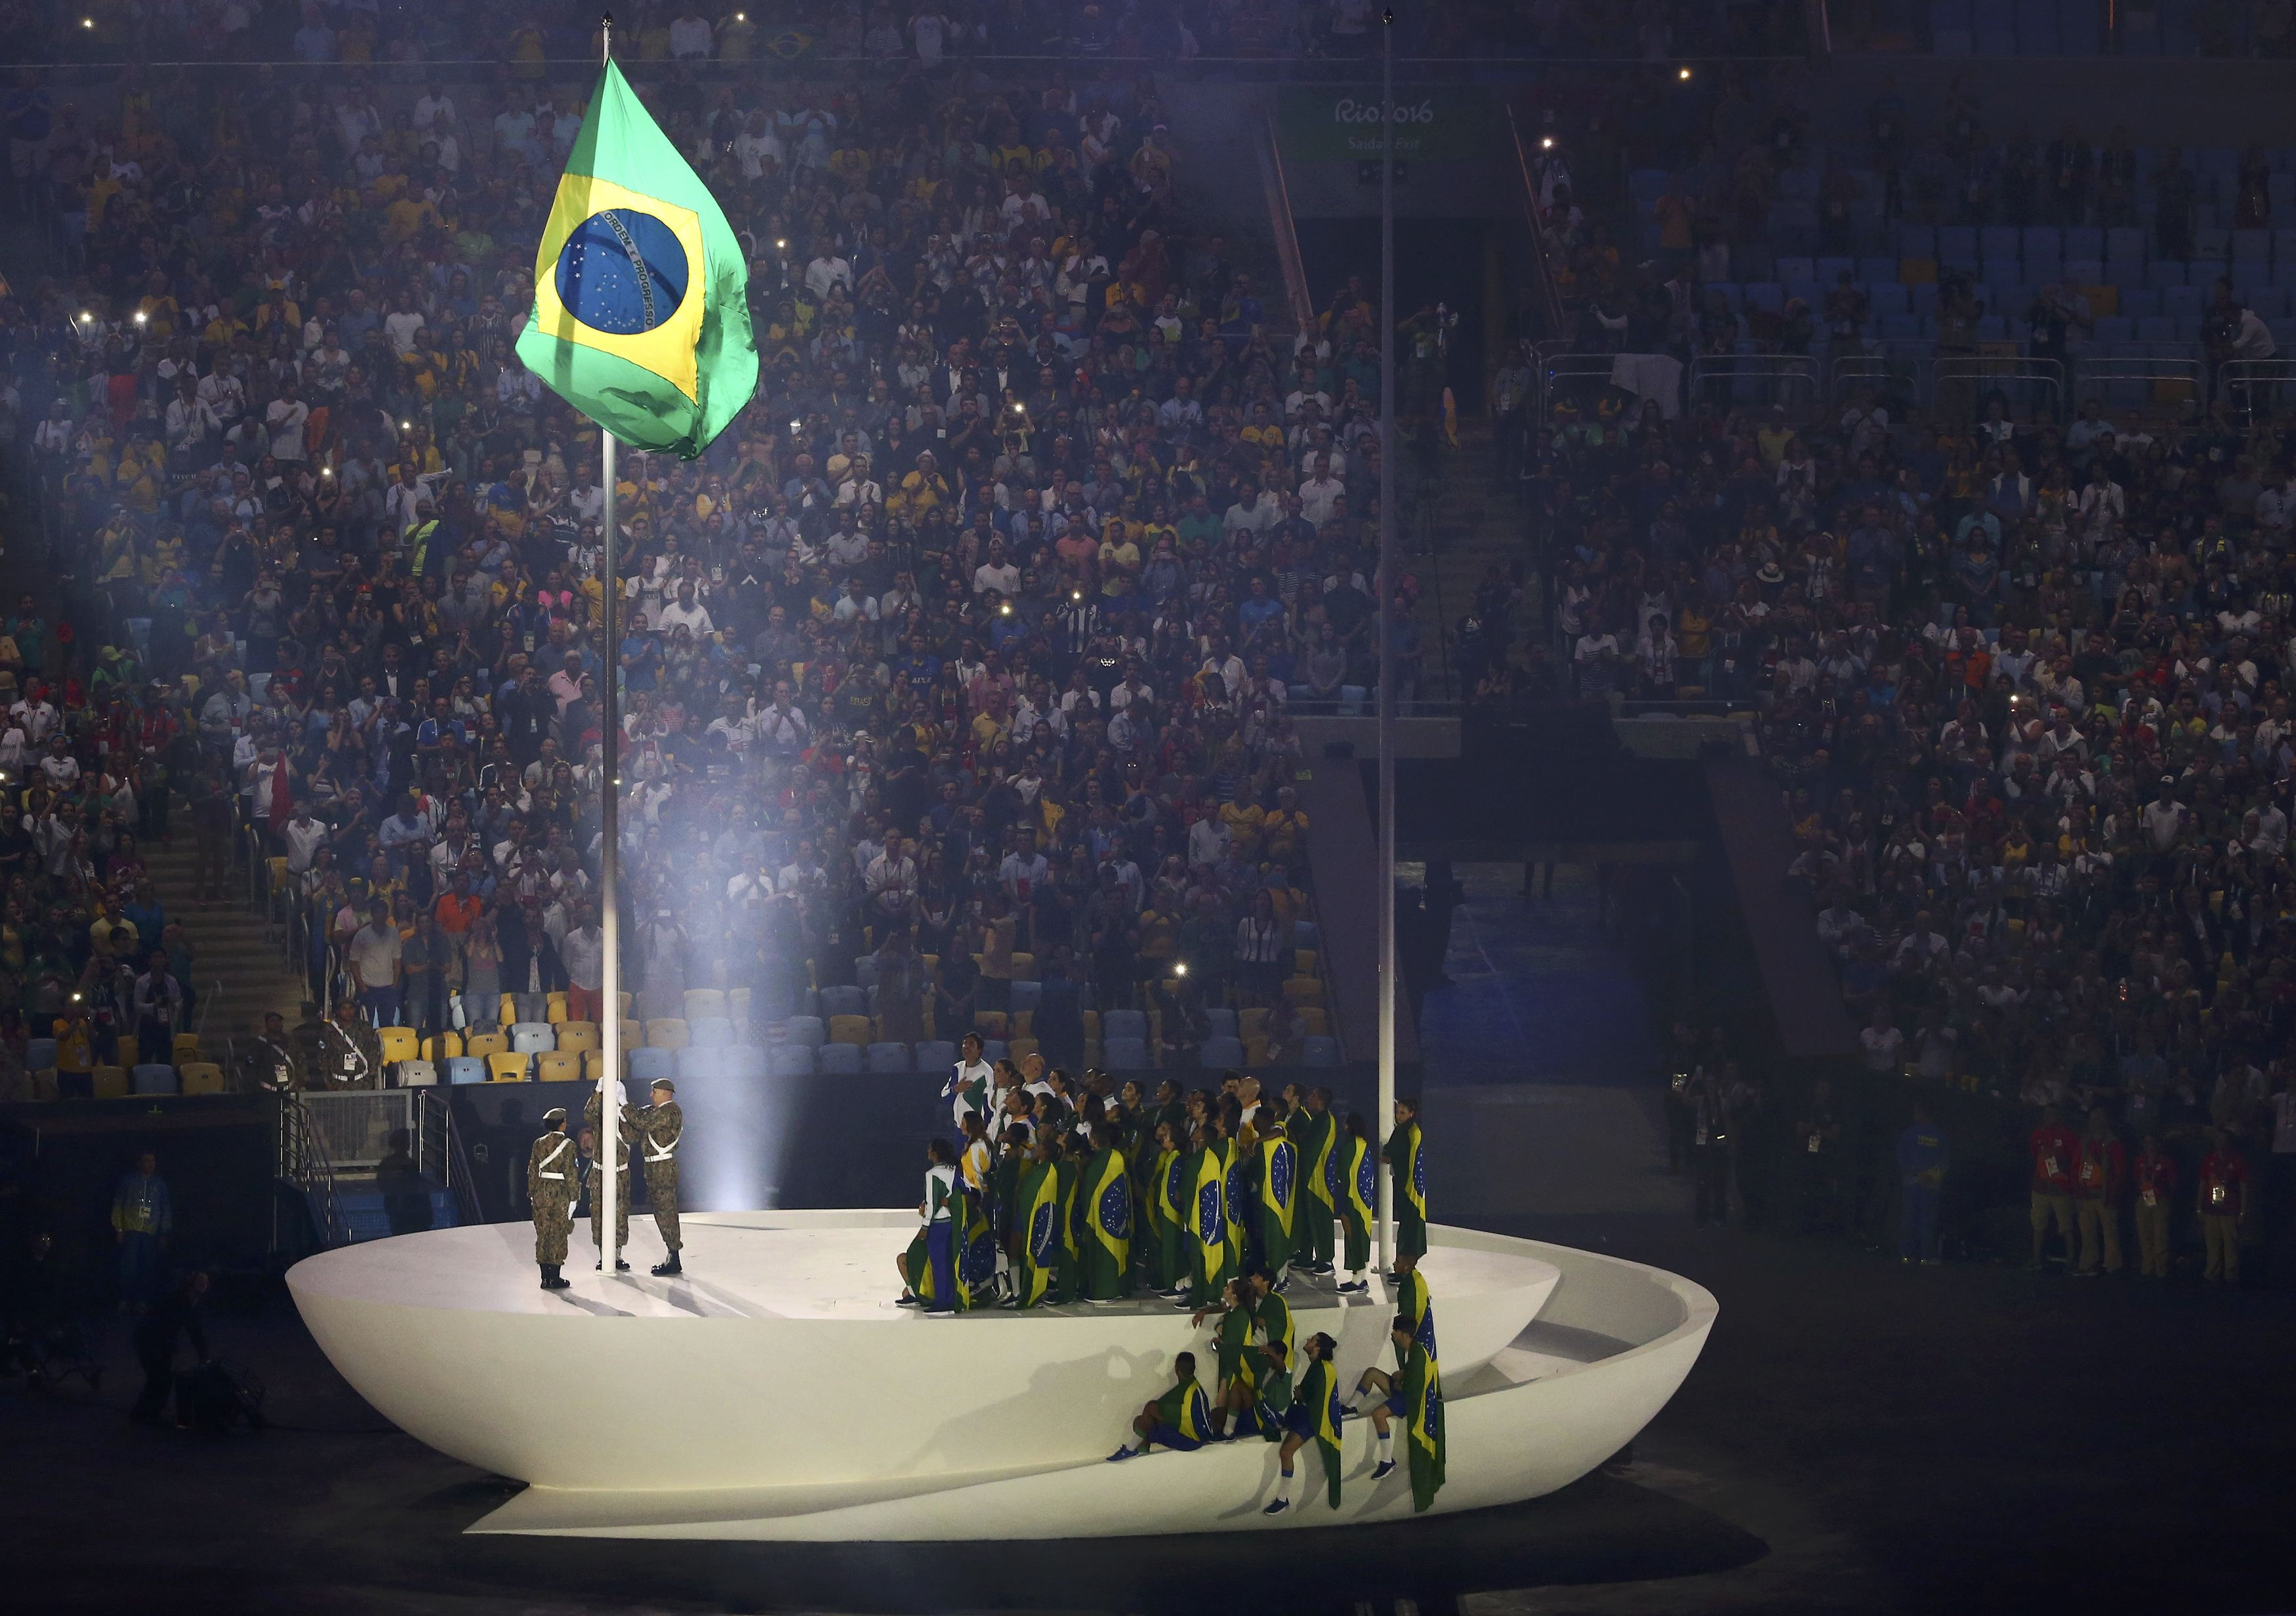 2016 Rio Olympics - Opening ceremony - Maracana - Rio de Janeiro, Brazil - 05/08/2016. The Brazilian national flag is raised during the opening ceremony. REUTERS/David Gray  FOR EDITORIAL USE ONLY. NOT FOR SALE FOR MARKETING OR ADVERTISING CAMPAIGNS.